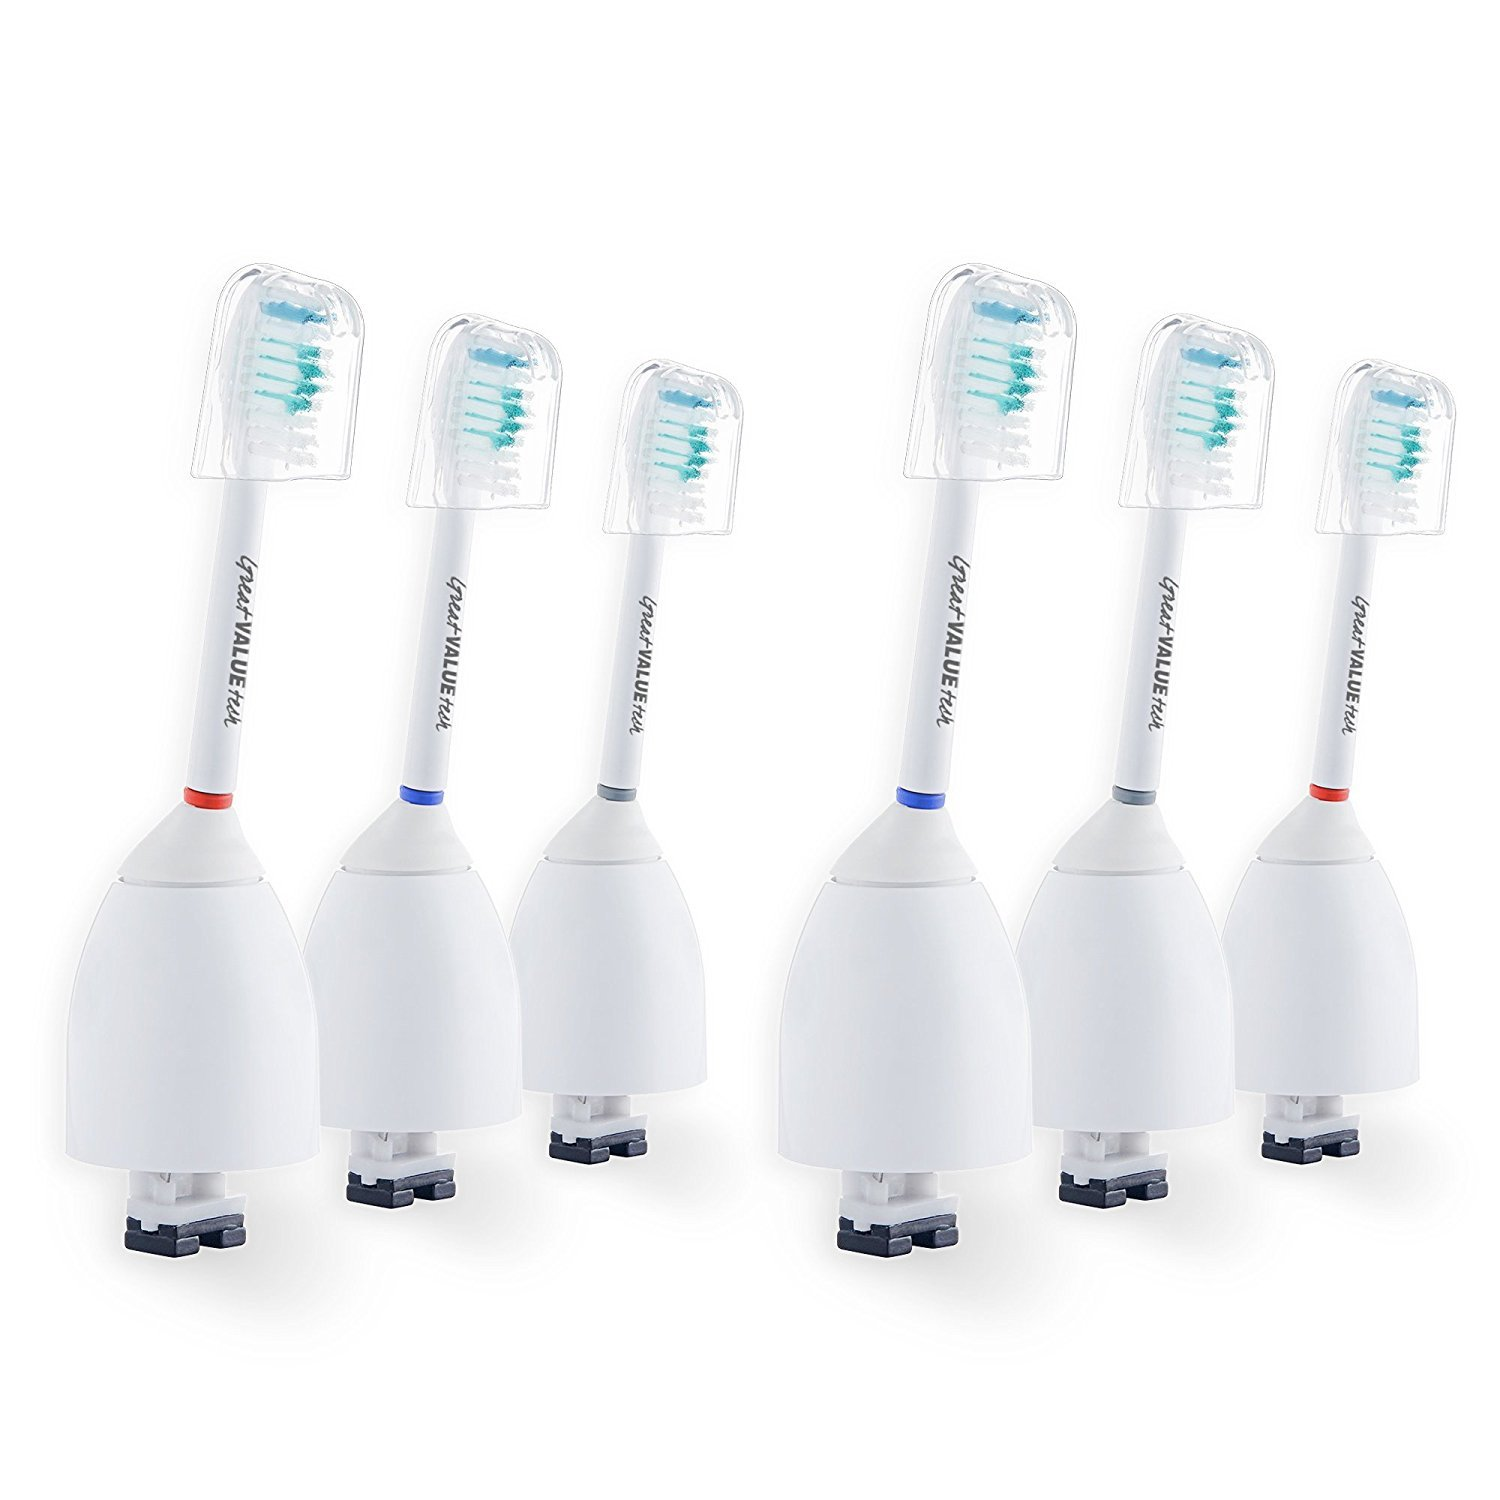 6x Sonic Replacement Toothbrush Brush Heads for Philips Sonicare E-Series fits Elite, Essence, Advance, CleanCare, Xtreme, eSeries, HX7022, HX7023, HX7026 by Great Value Tech